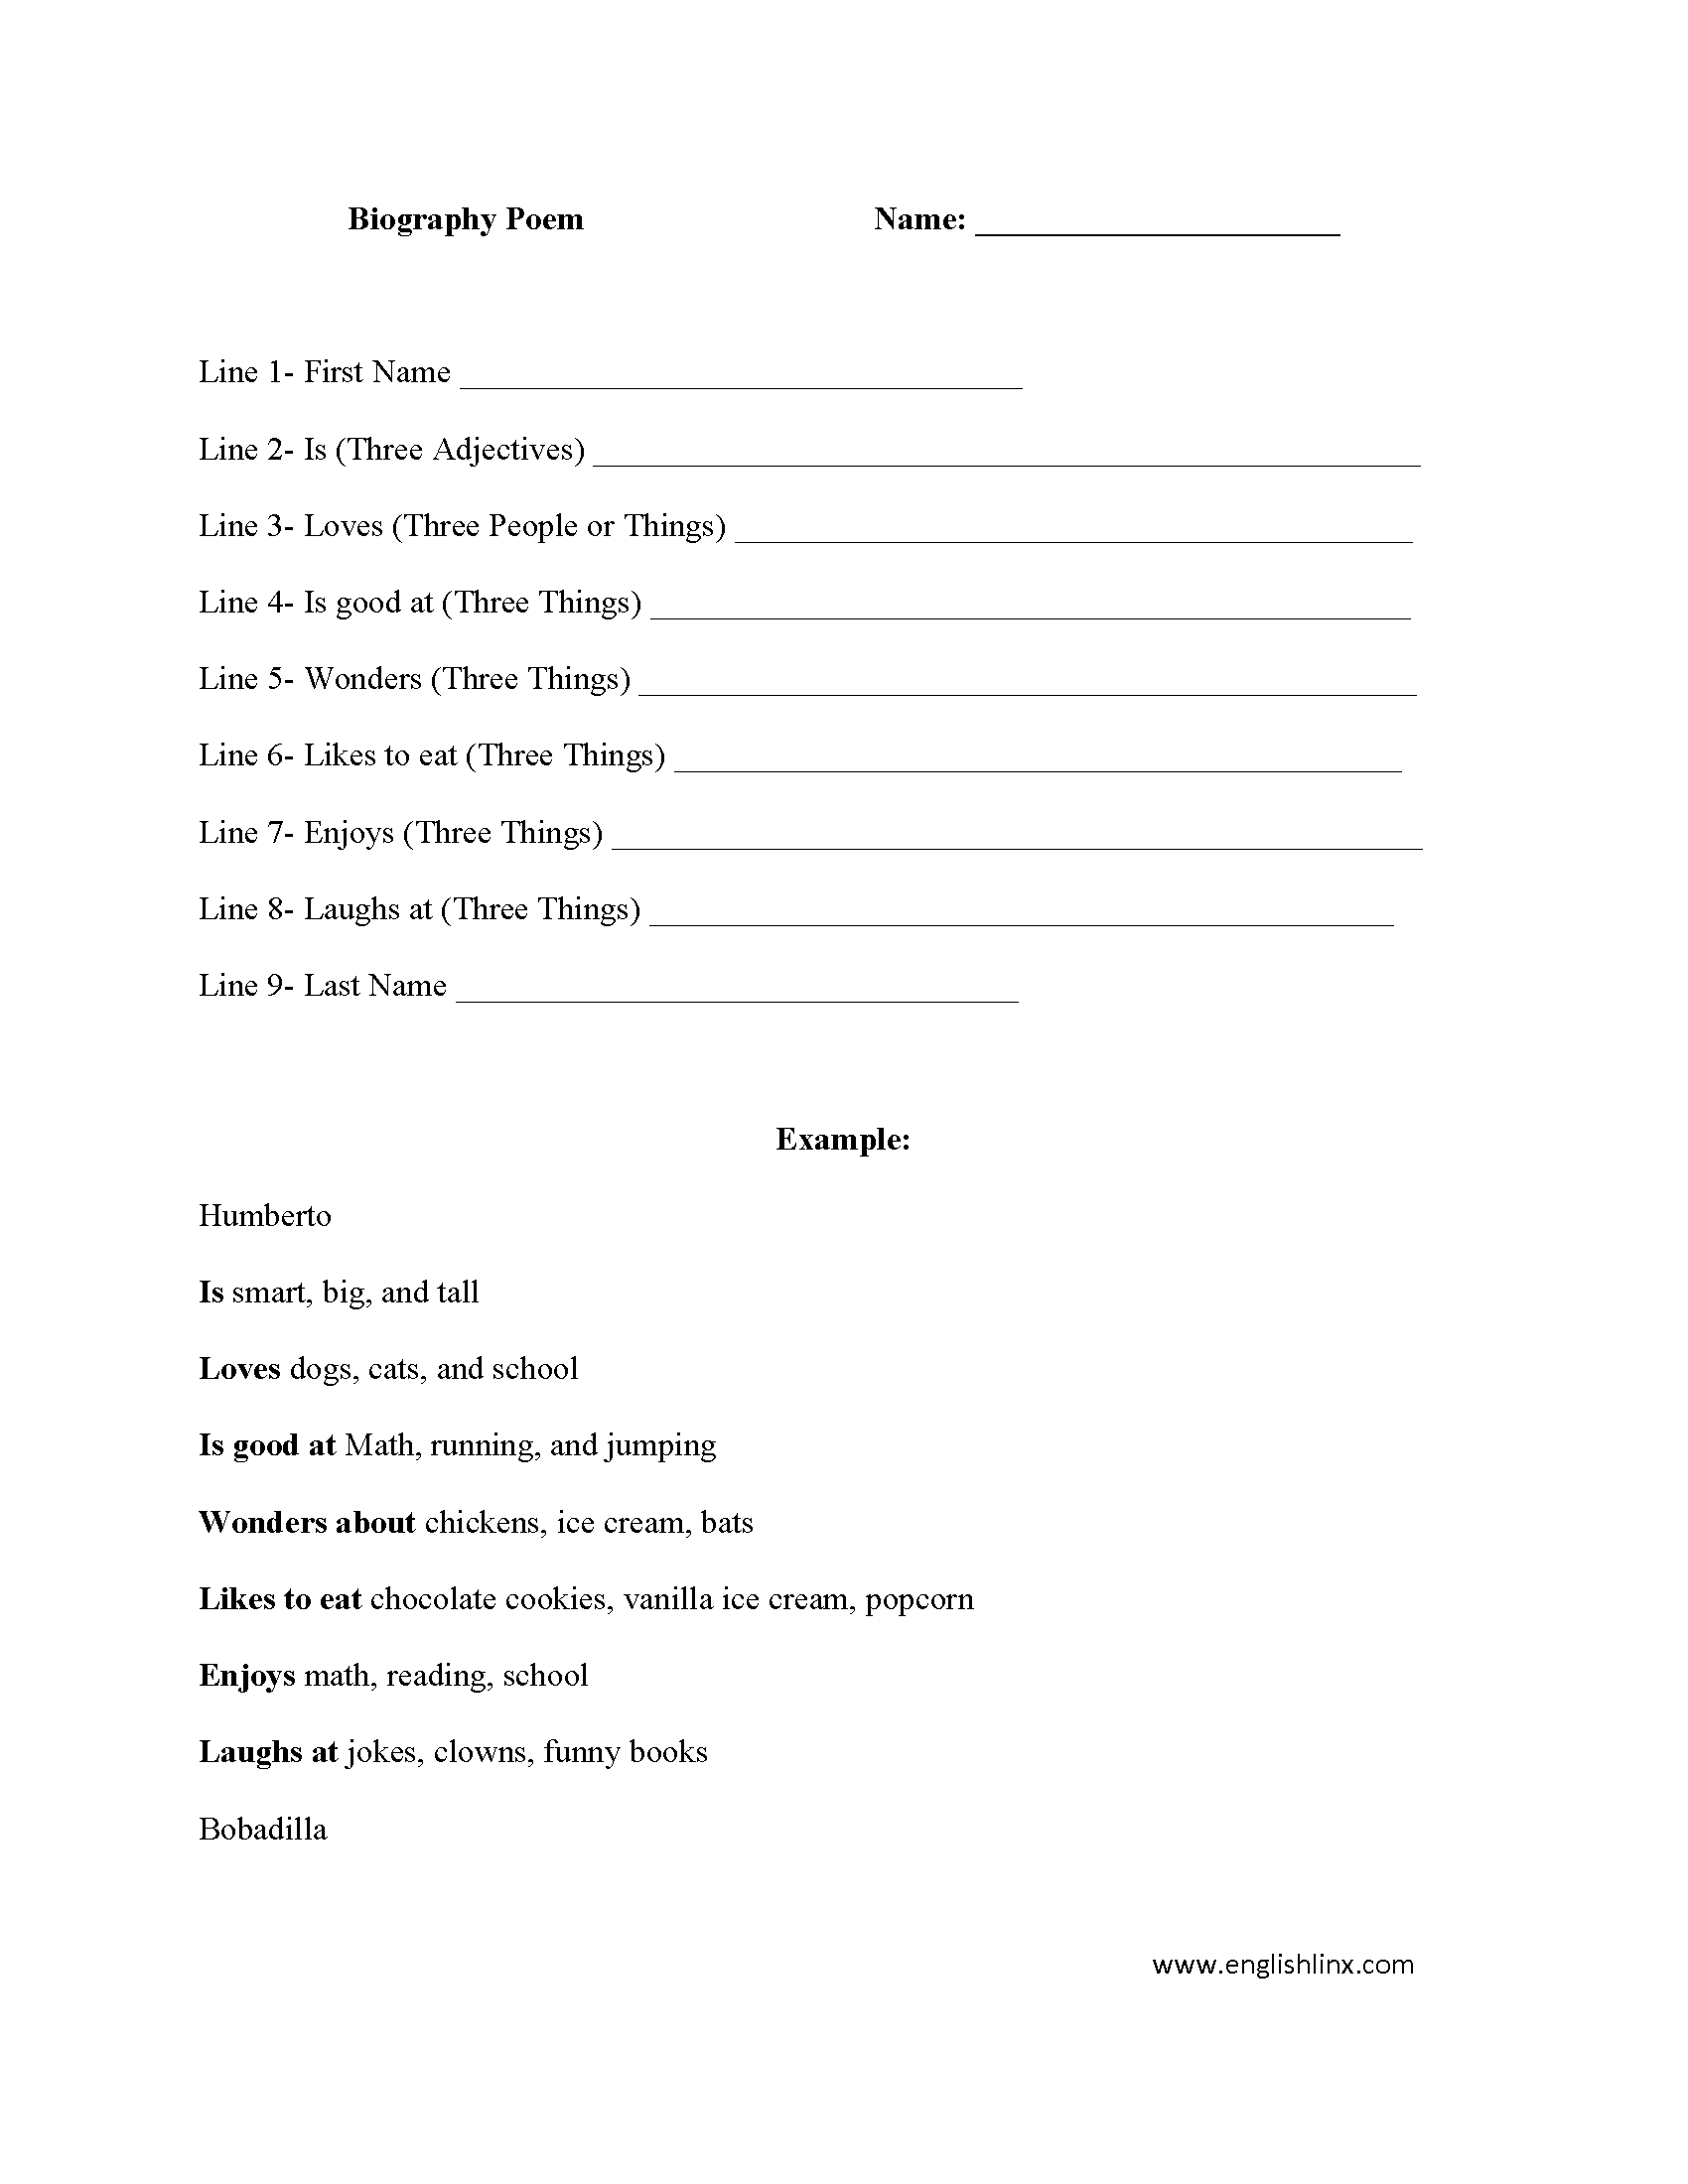 15 Best Images Of Biography Outline Worksheet